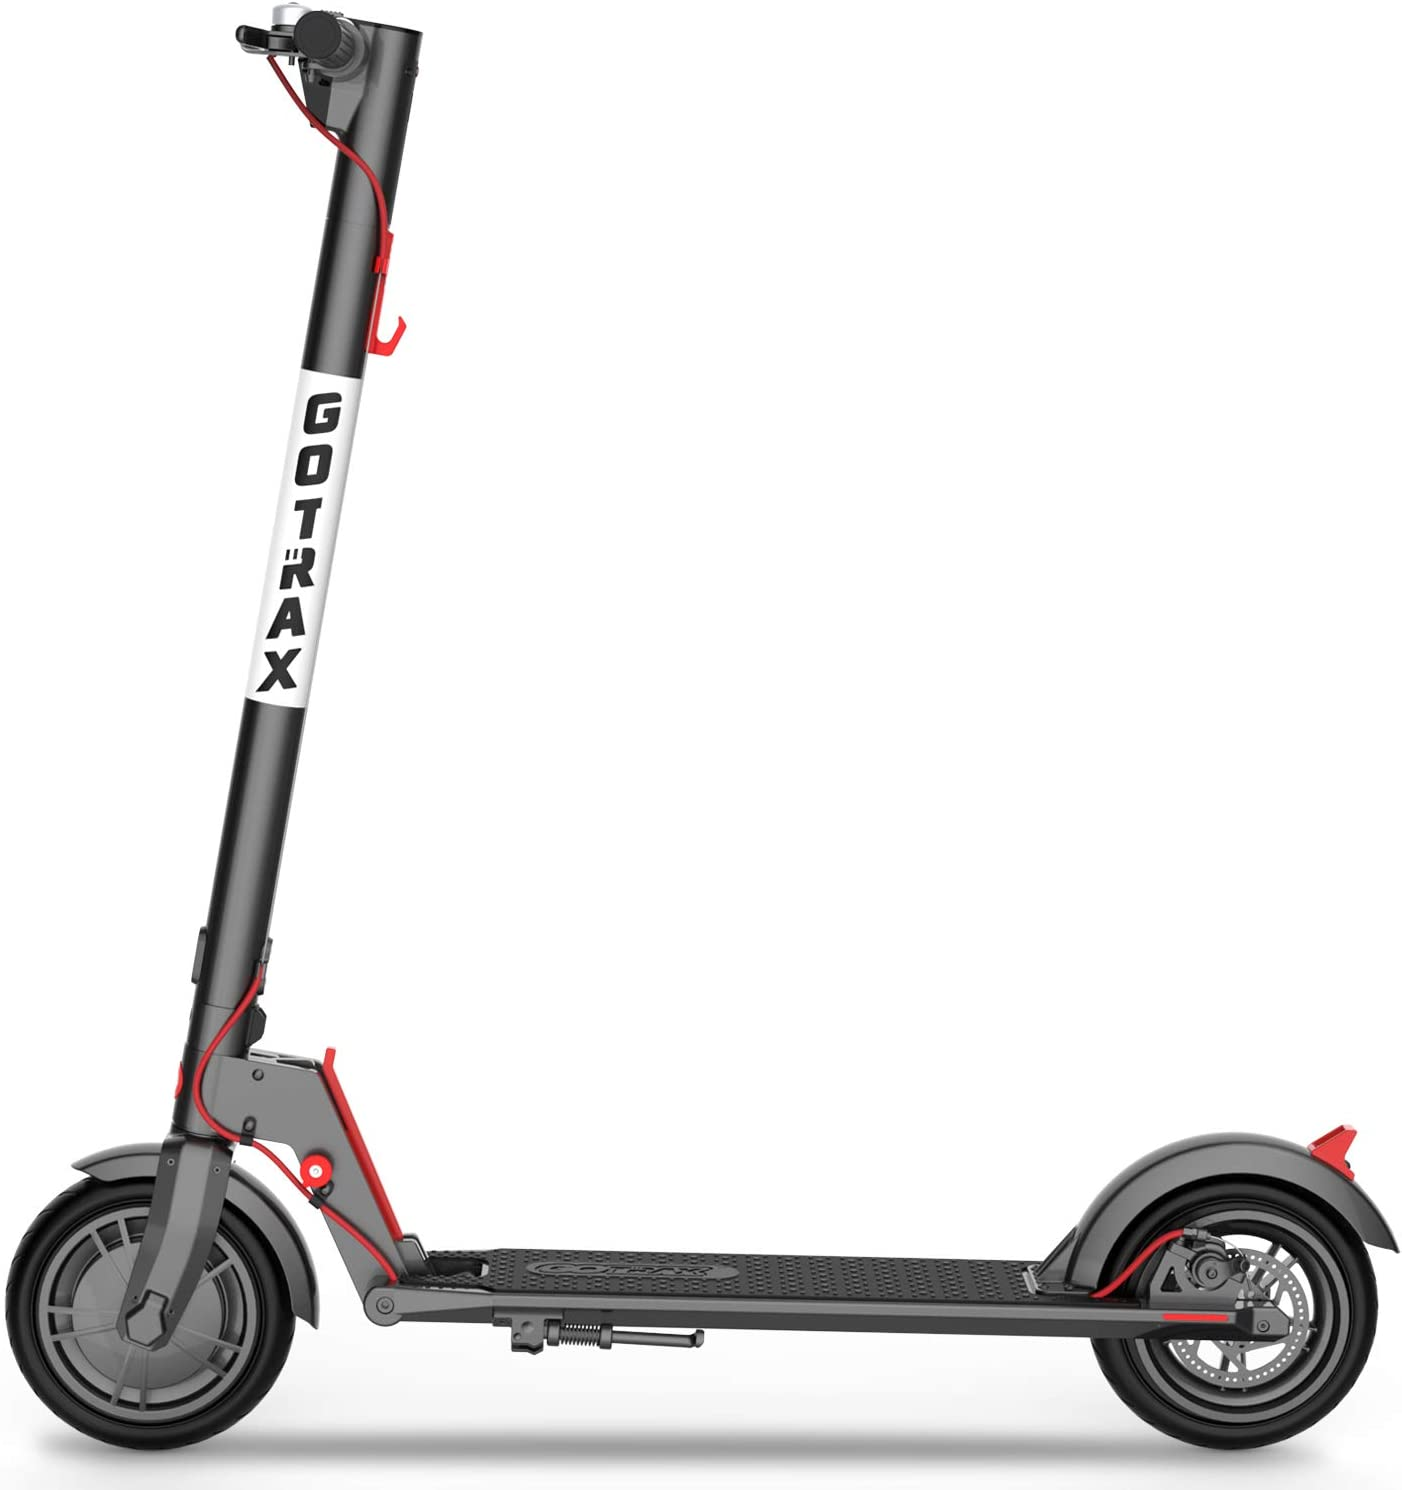 Top 10 Best Electric Scooters Under 300 [Buying Guide Reviews - 2021] 1